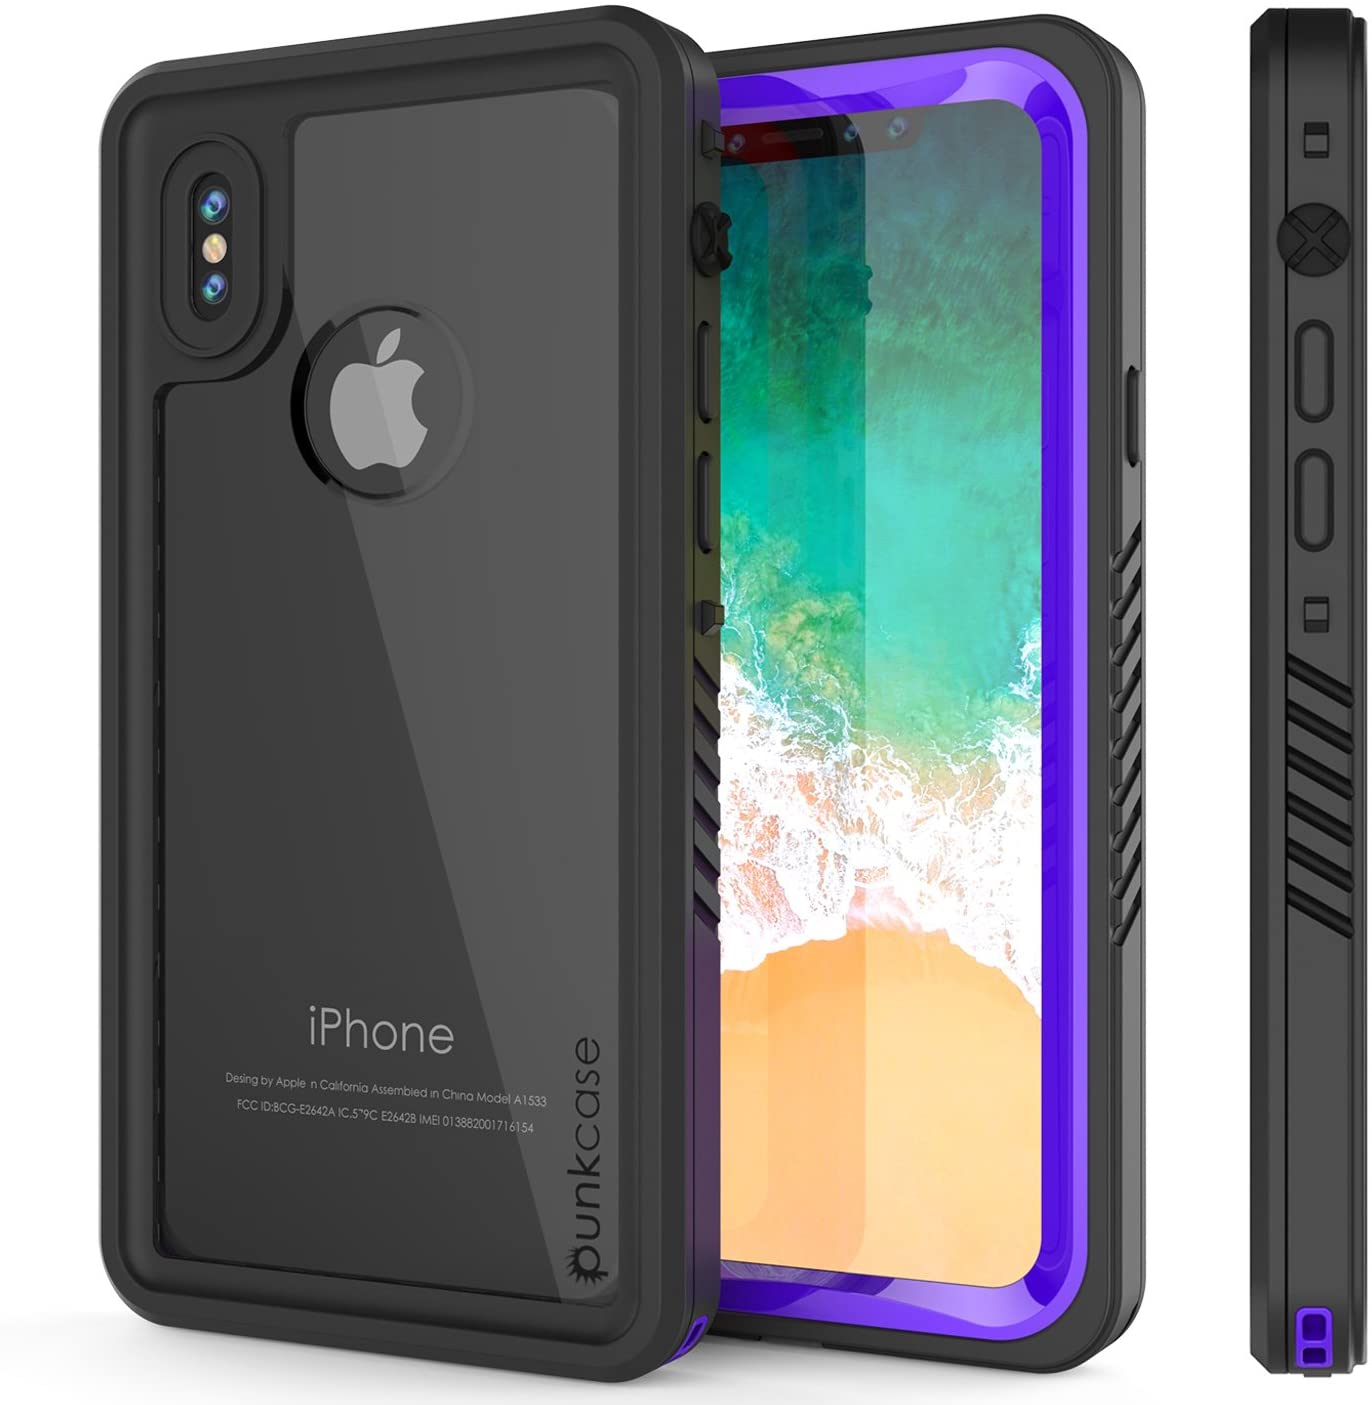 iPhone X Waterproof Case, Punkcase [Extreme Series] [Slim Fit] [IP68 Certified] [Shockproof] [Snowproof] [Dirproof] Armor Cover W/Built in Screen Protector for Apple iPhone 10 [Purple]